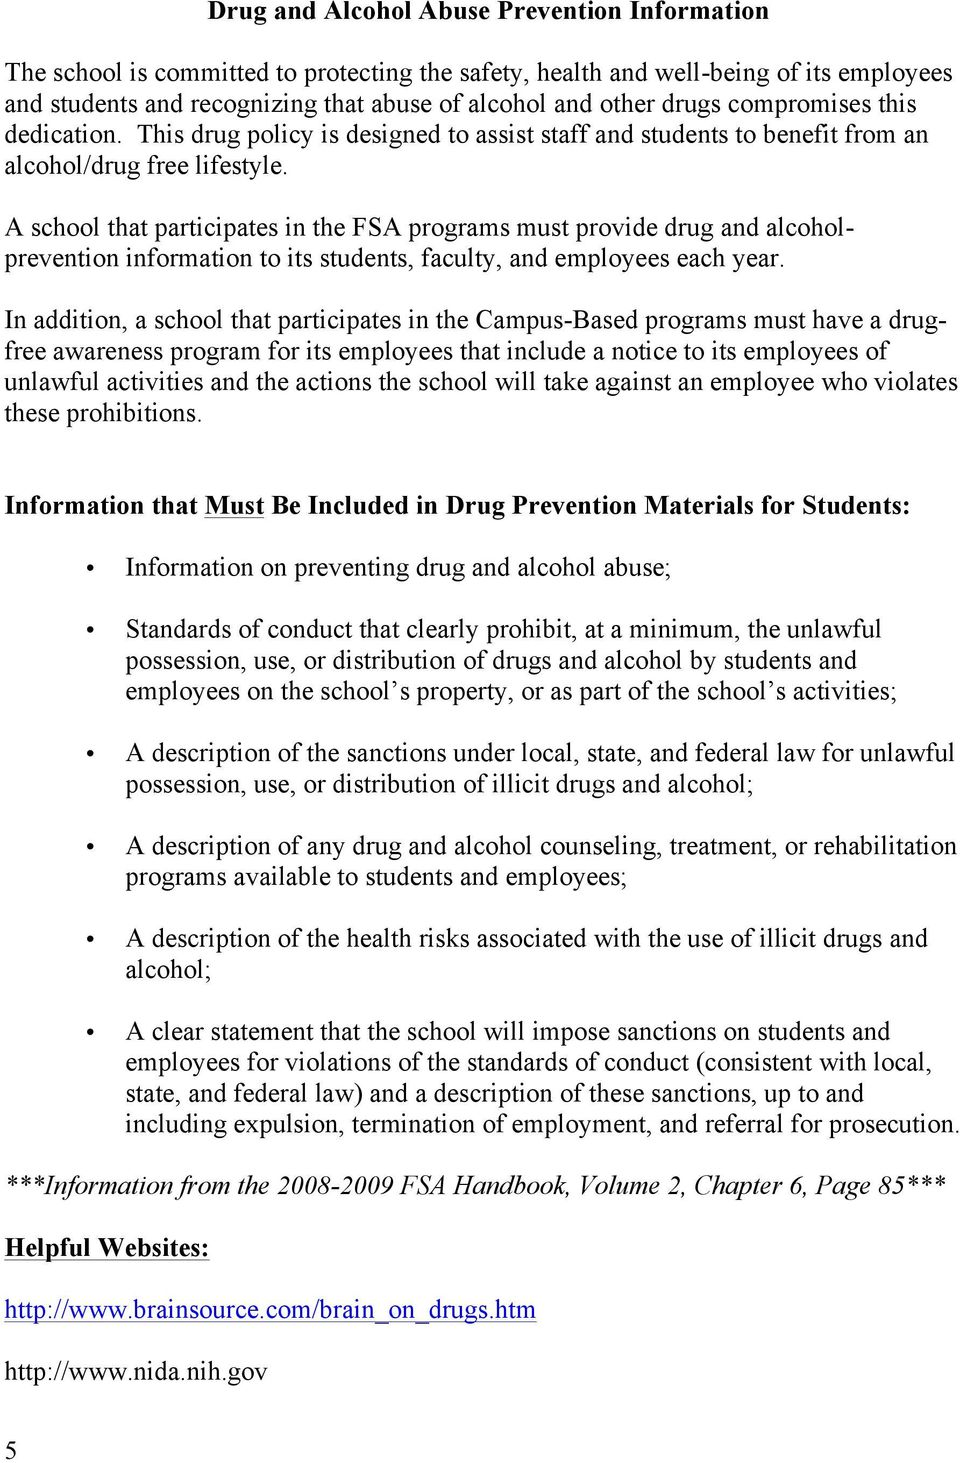 A school that participates in the FSA programs must provide drug and alcoholprevention information to its students, faculty, and employees each year.